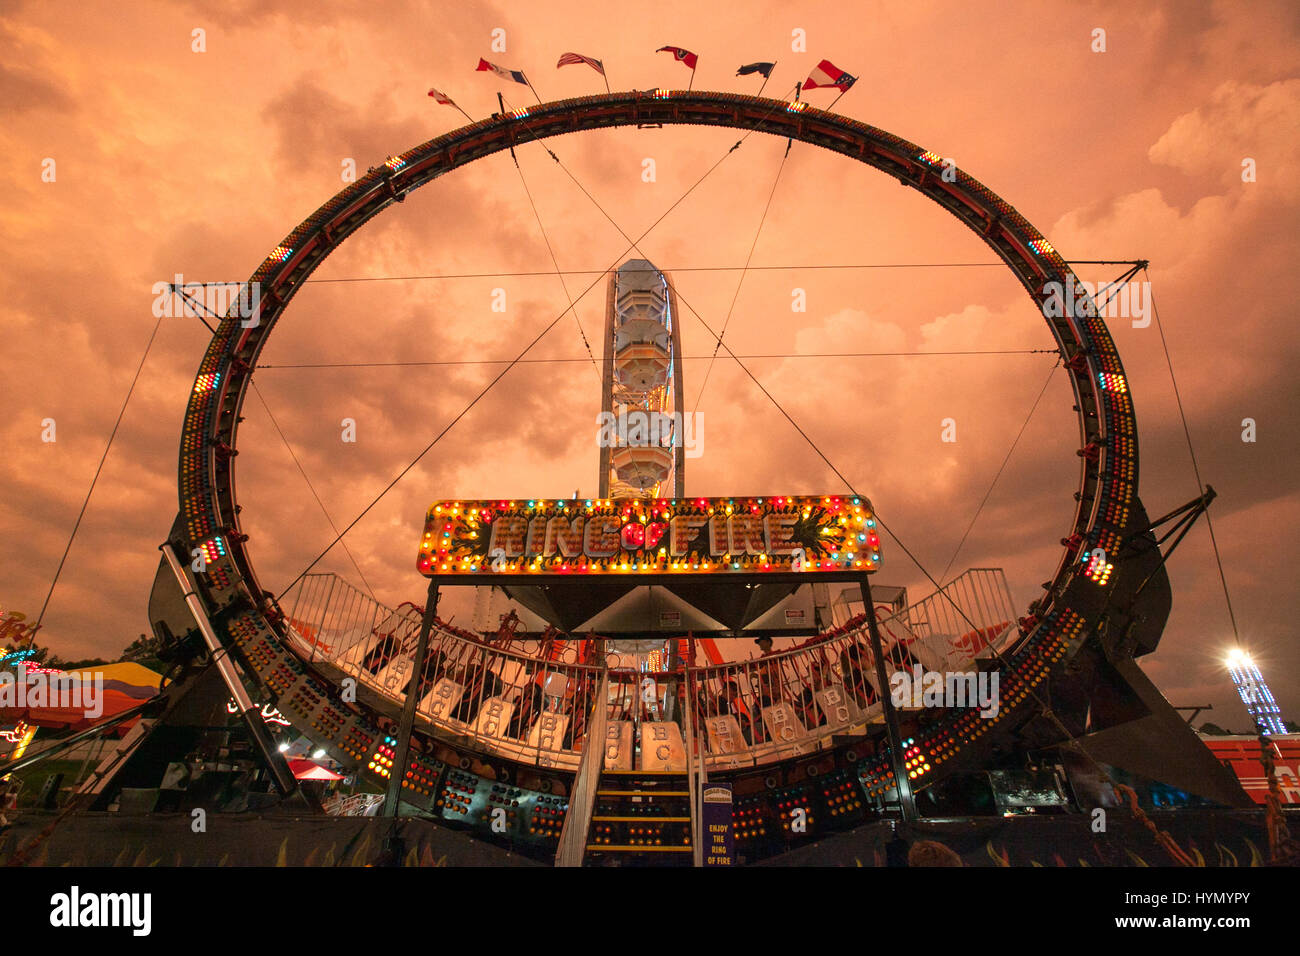 The Ring of Fire ride operates at the Iowa State Fair under dark storm clouds at sunset. - Stock Image